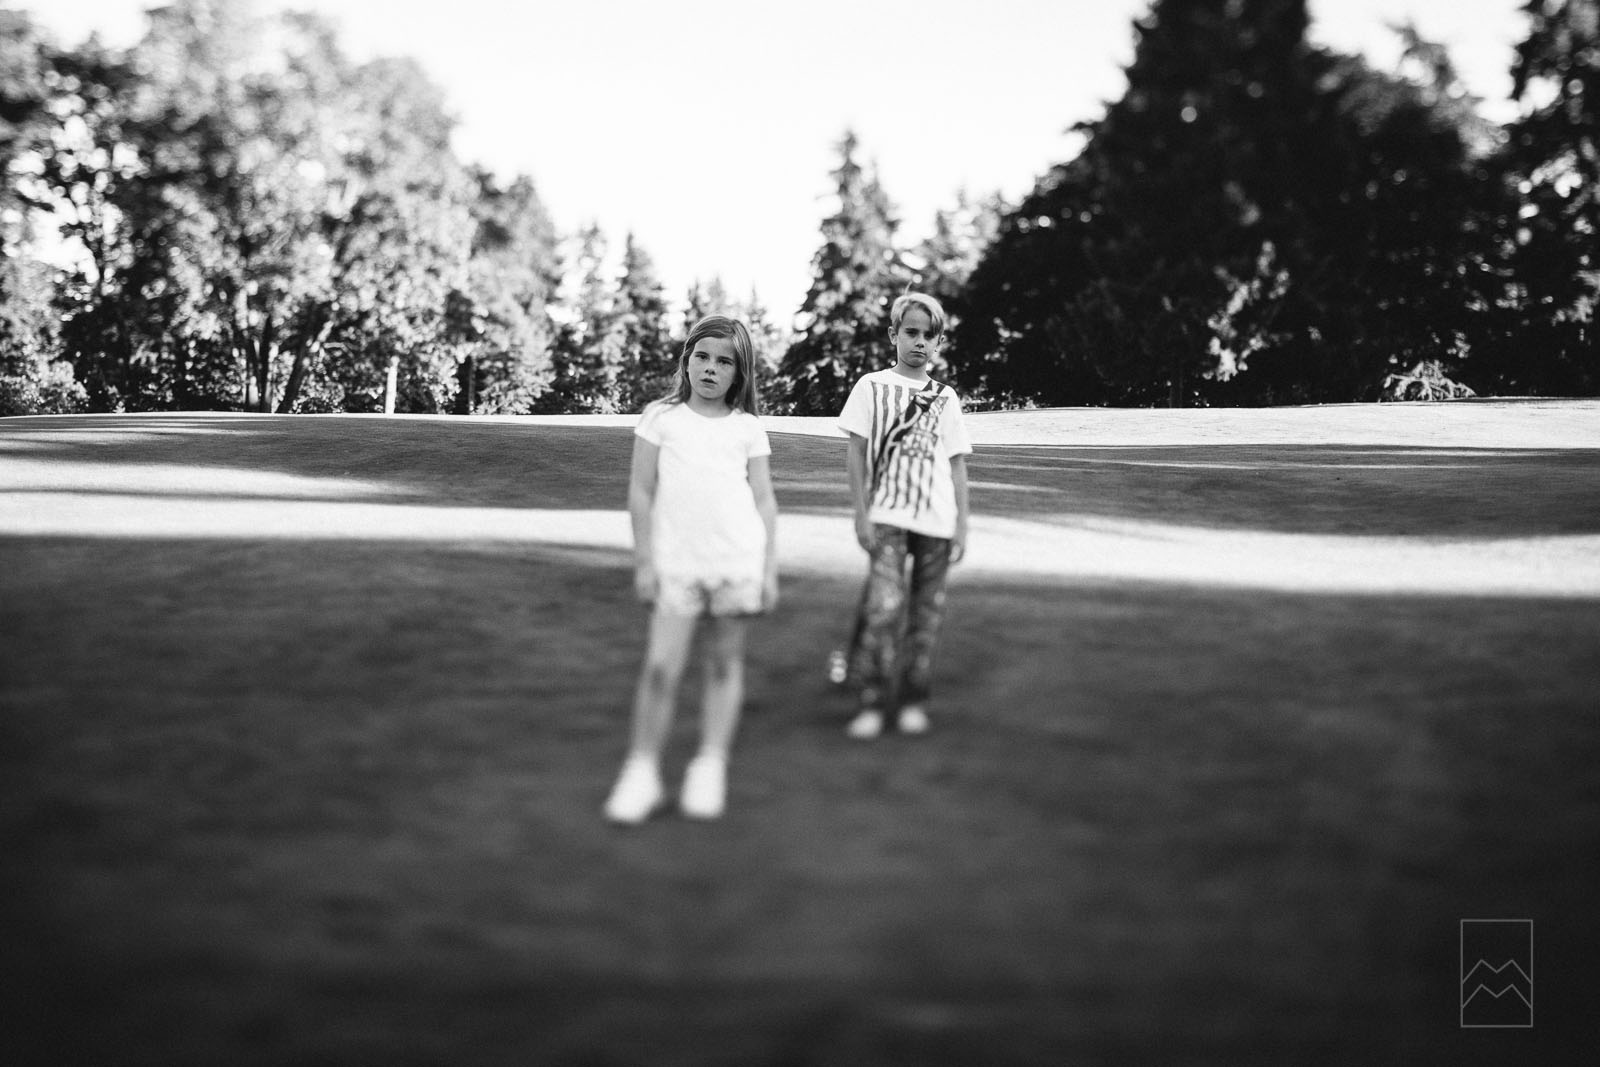 black-and-white-photo-of-two-kids-with-a-tilt-shift-lens-by-meghan-mcmackin